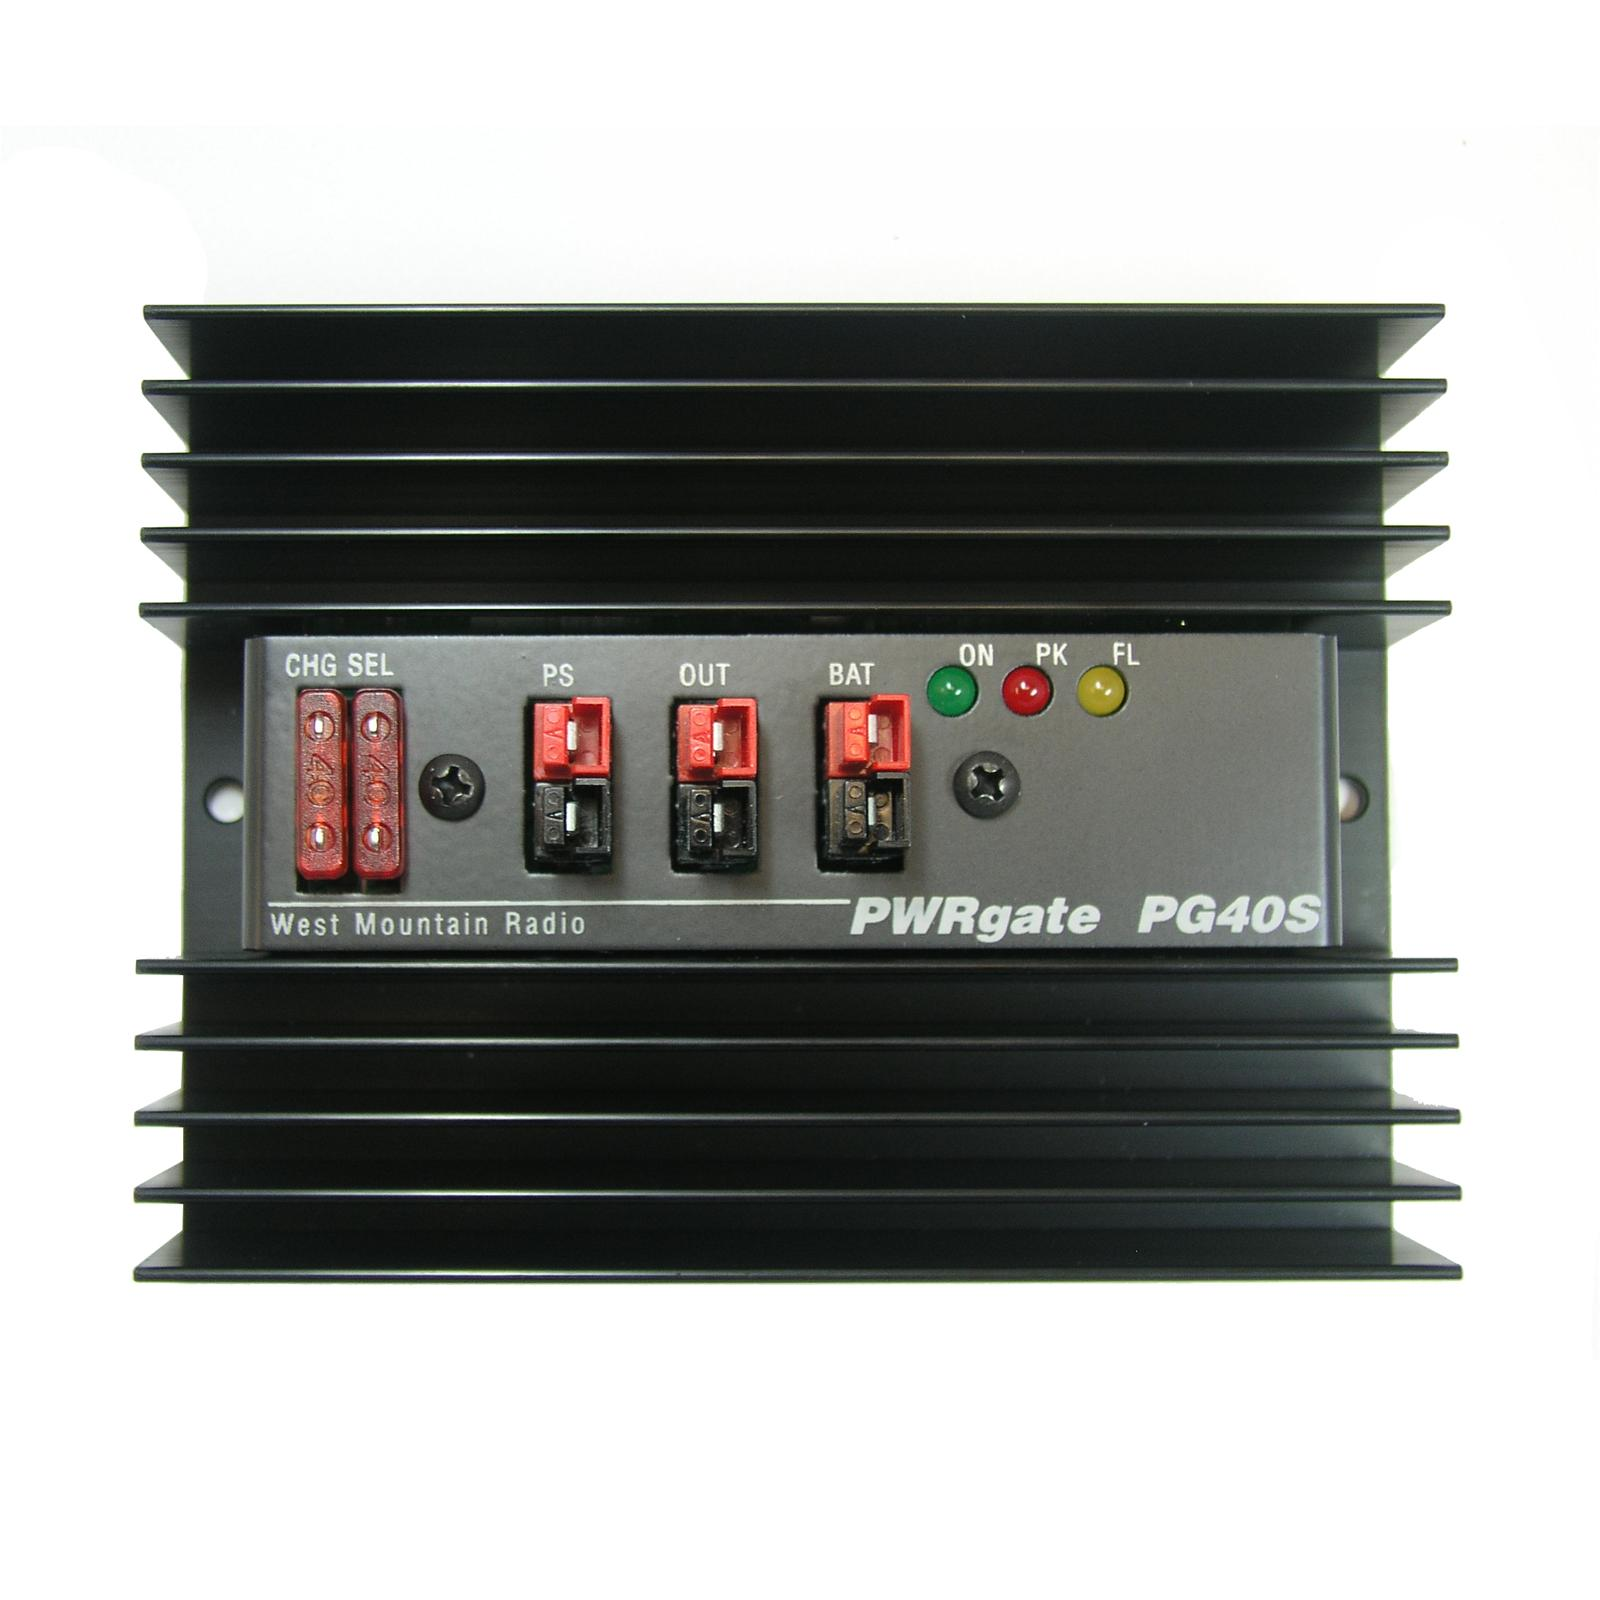 West Mountain Radio Super Pwrgate Battery Backup Systems